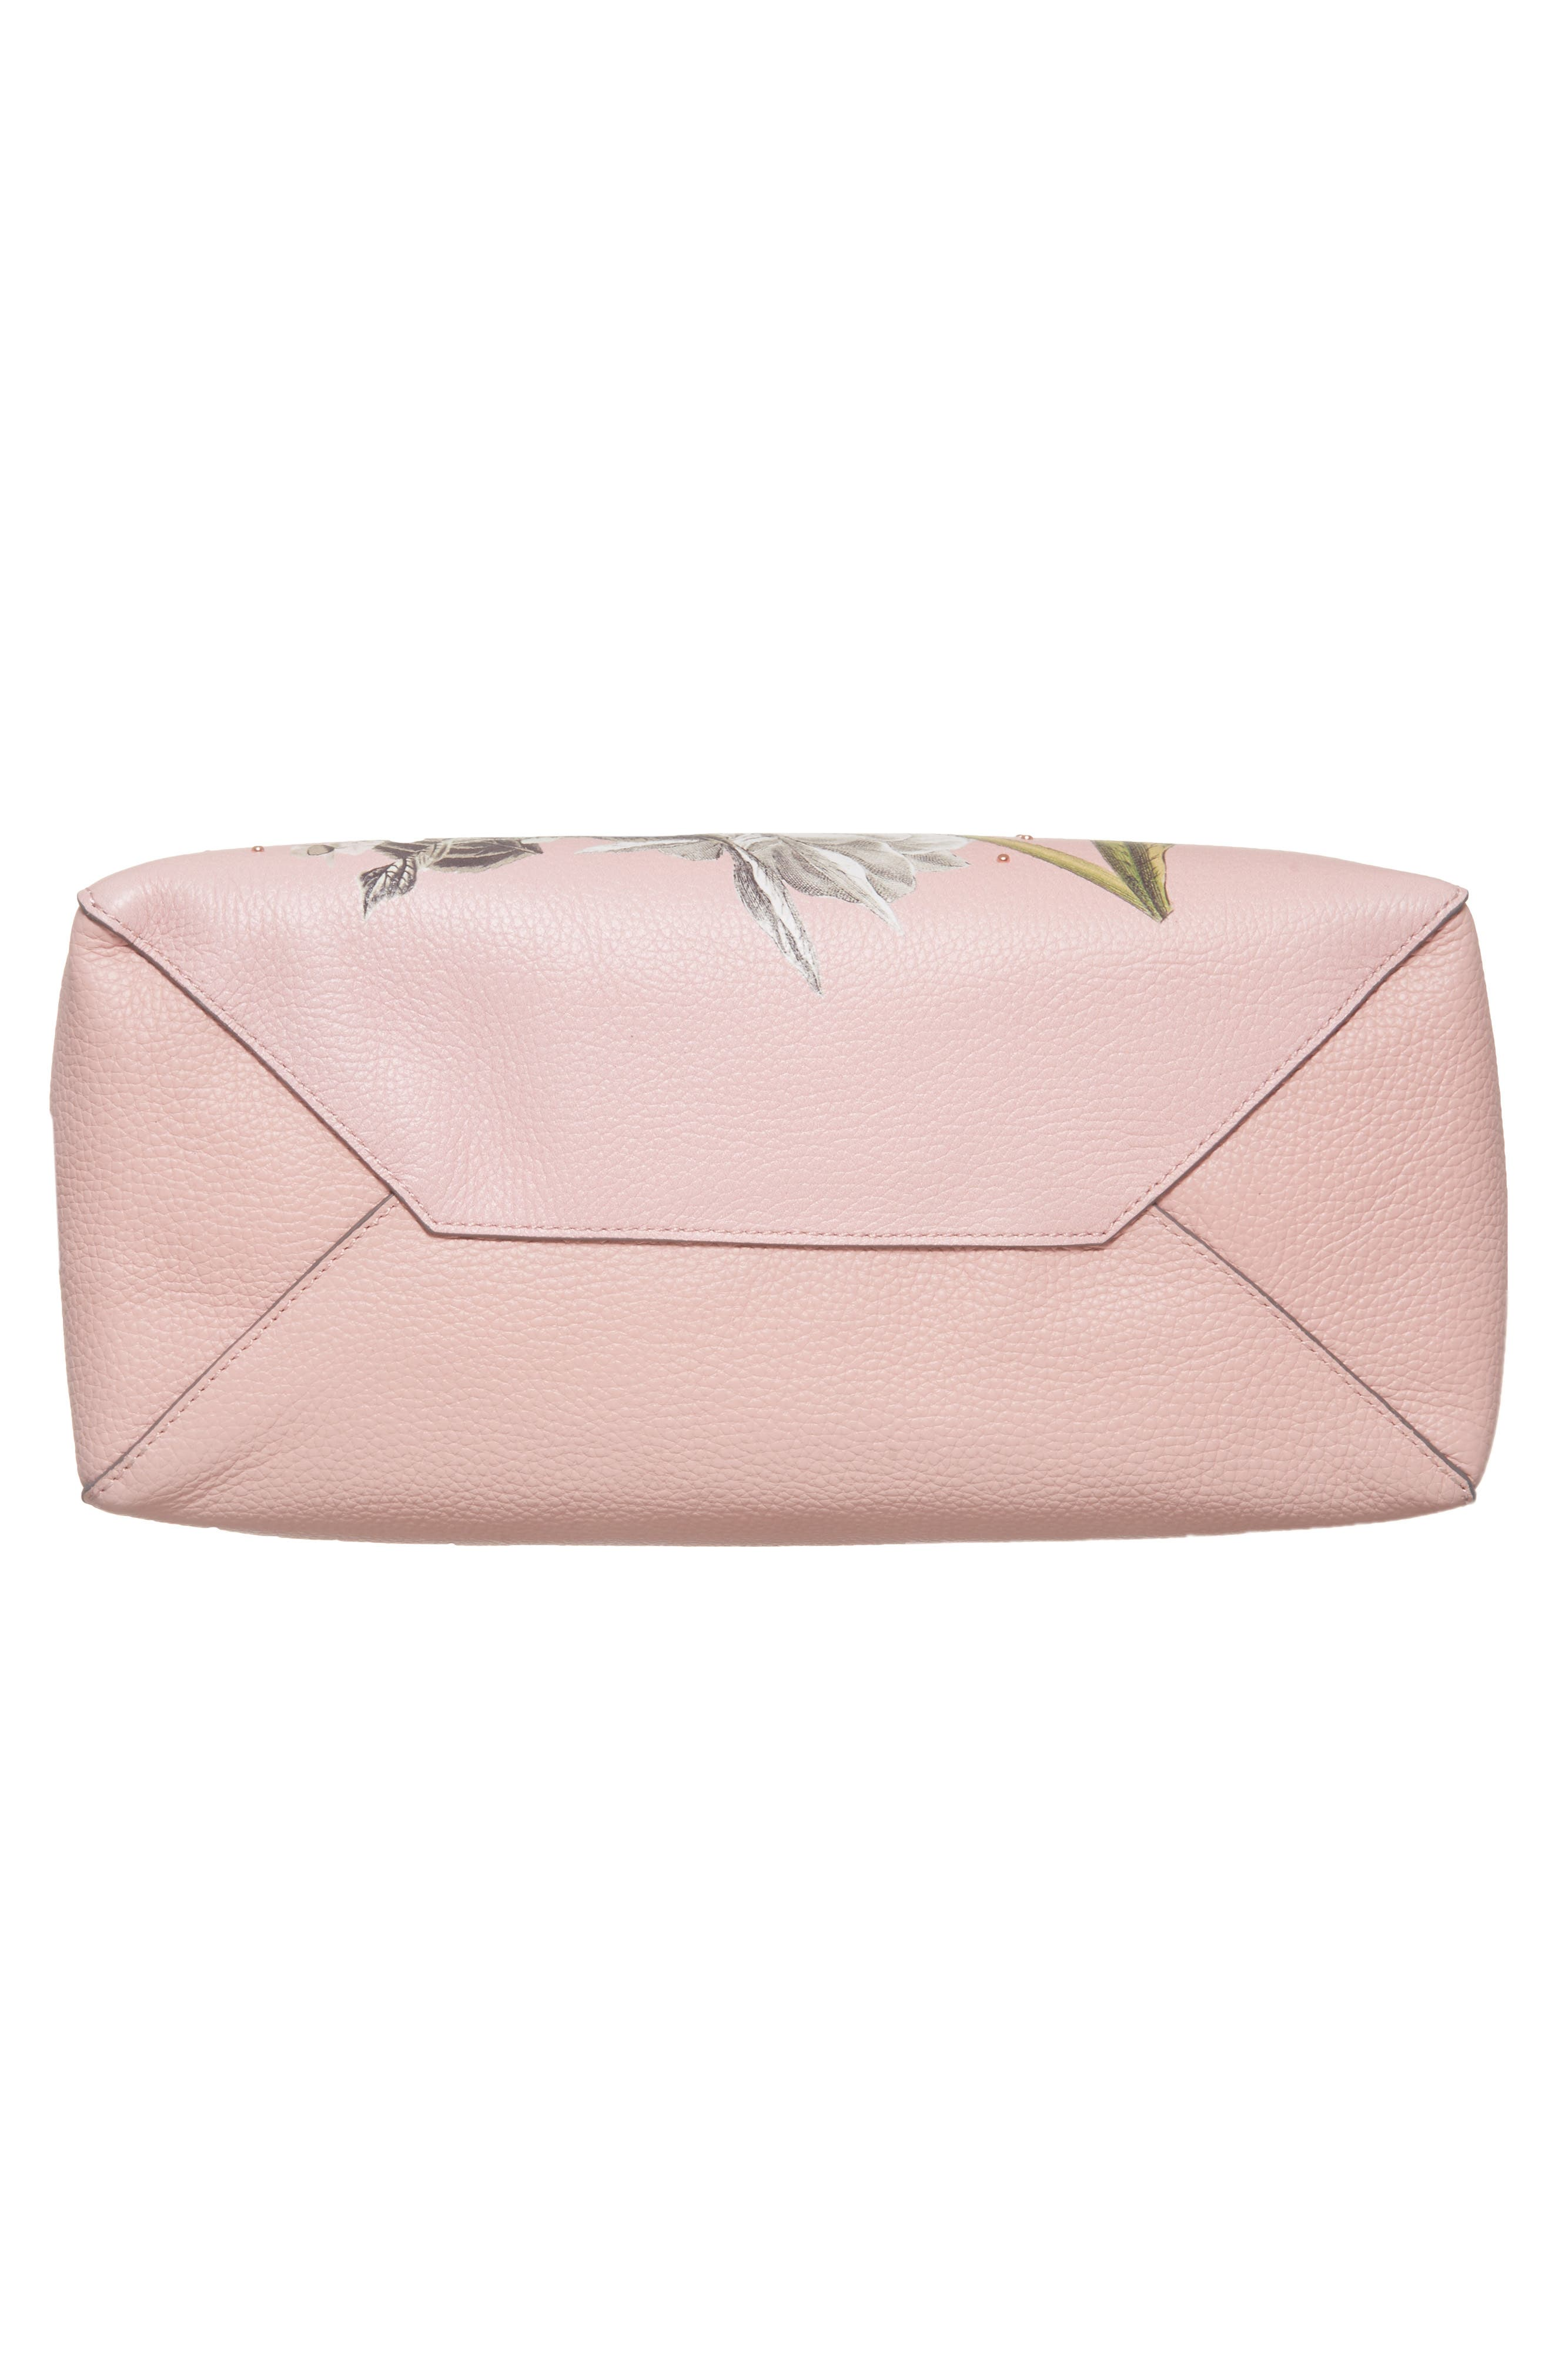 Palace Gardens Large Leather Tote,                             Alternate thumbnail 6, color,                             Dusky Pink